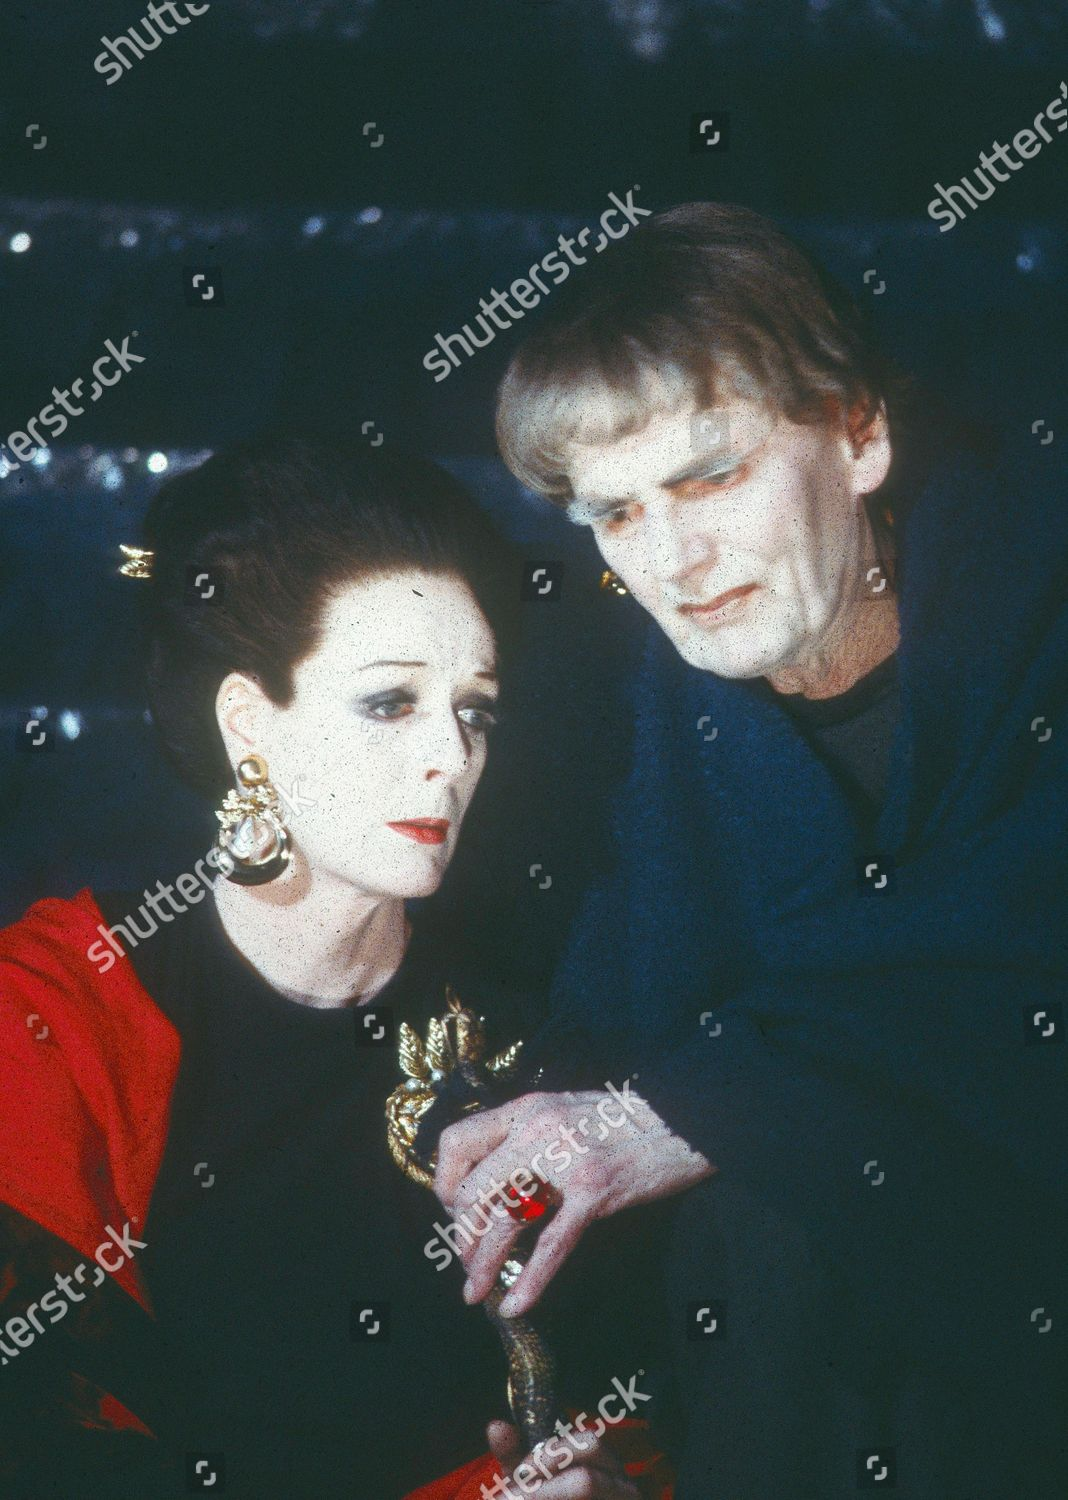 Stock photo of 'The Infernal Machine' Play performed at the Lyric Theatre, London, UK 1986 - 02 Apr 2020